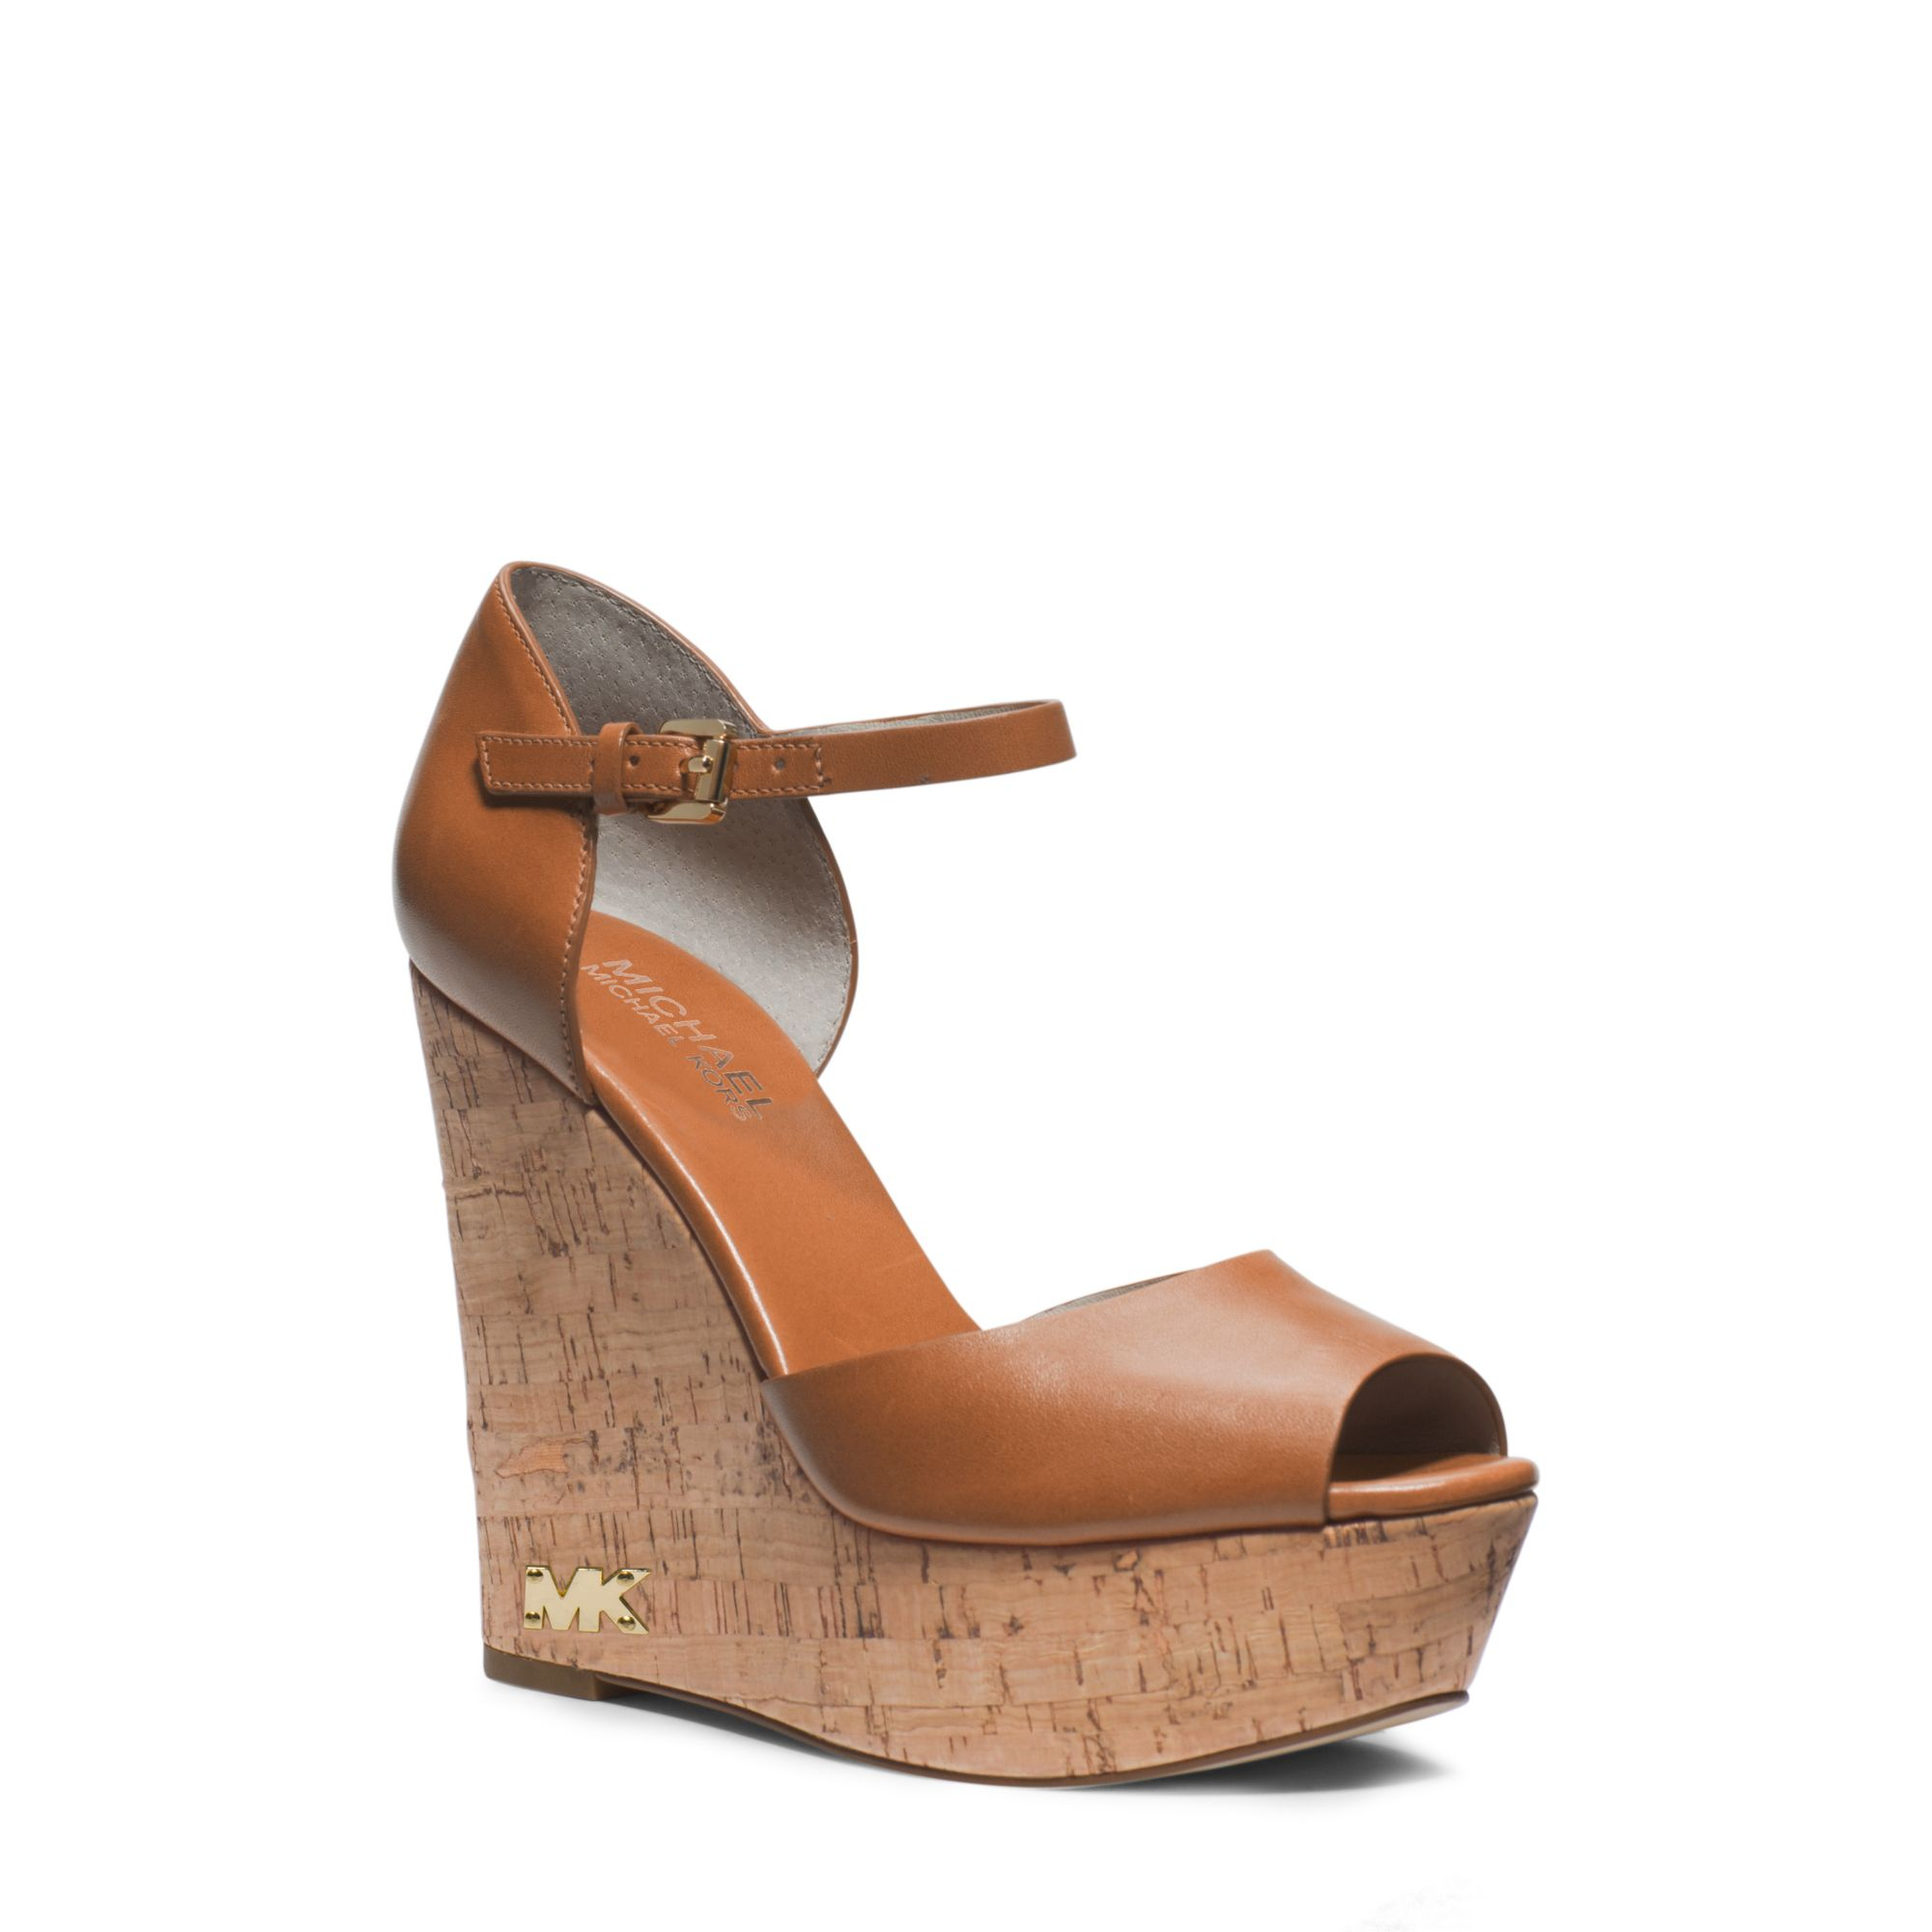 136da2327d34 Lyst - Michael Kors Ivana Leather And Cork Wedge in Brown